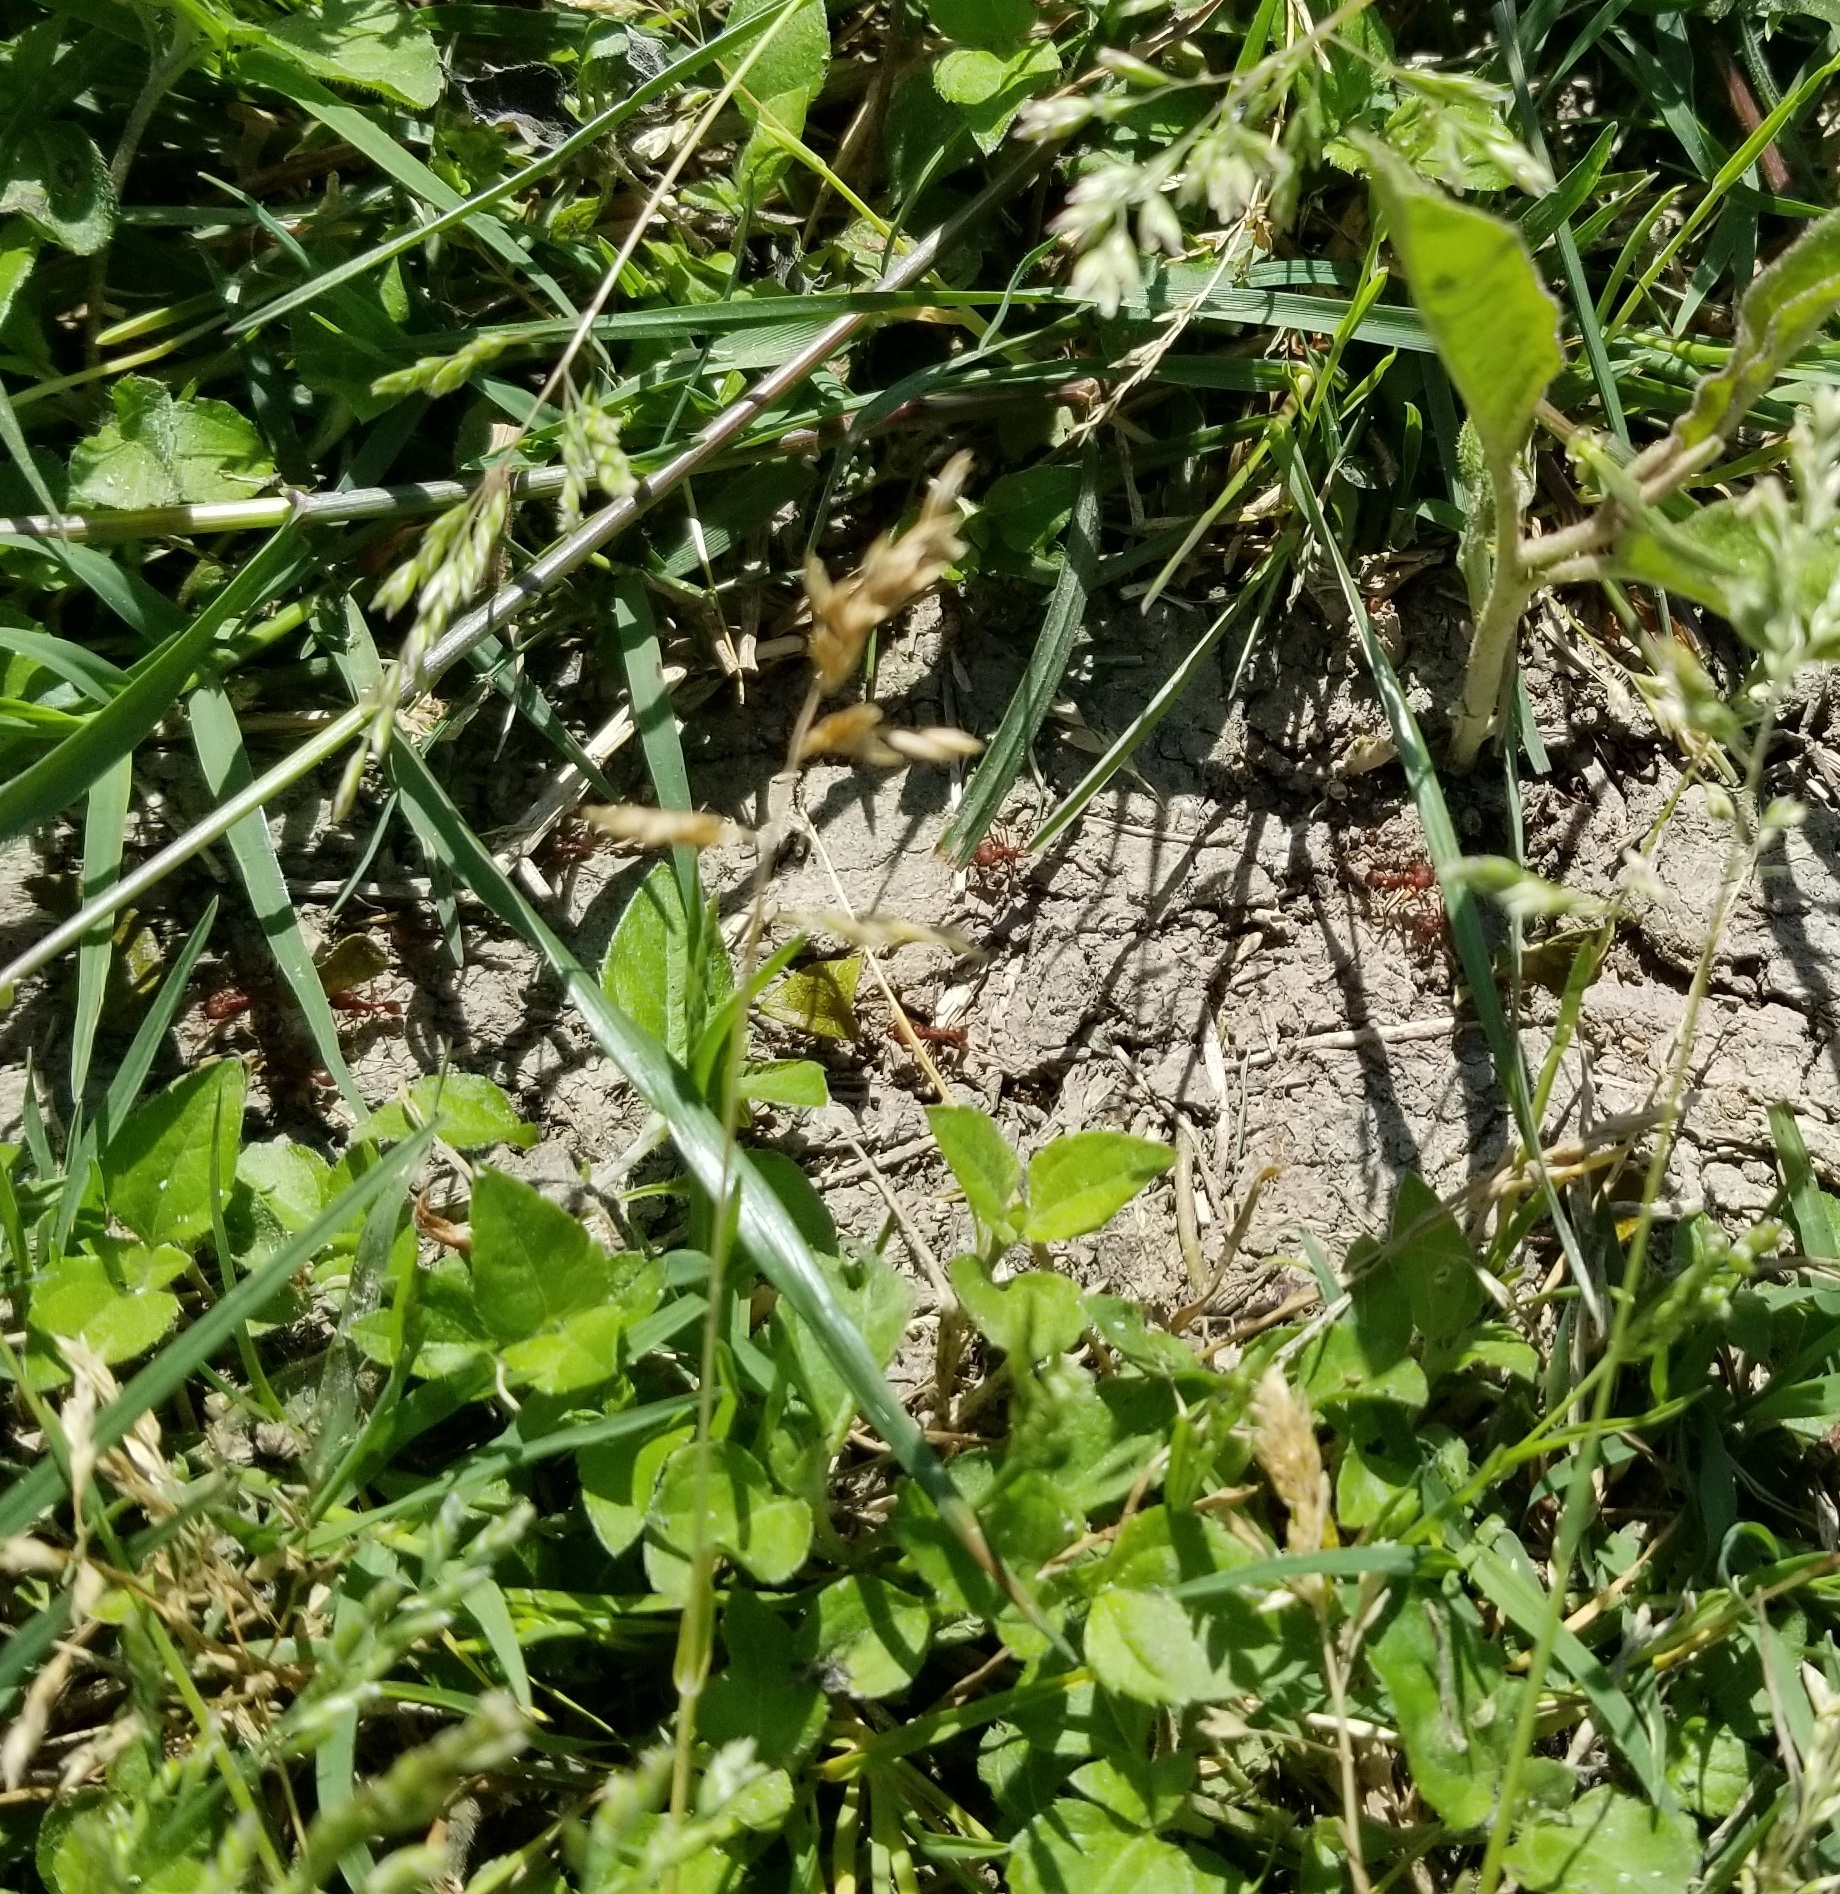 There was this long trail through the grass about 2-3 inches wide where the entire thing was covered with large ants hauling off pieces of leaves.